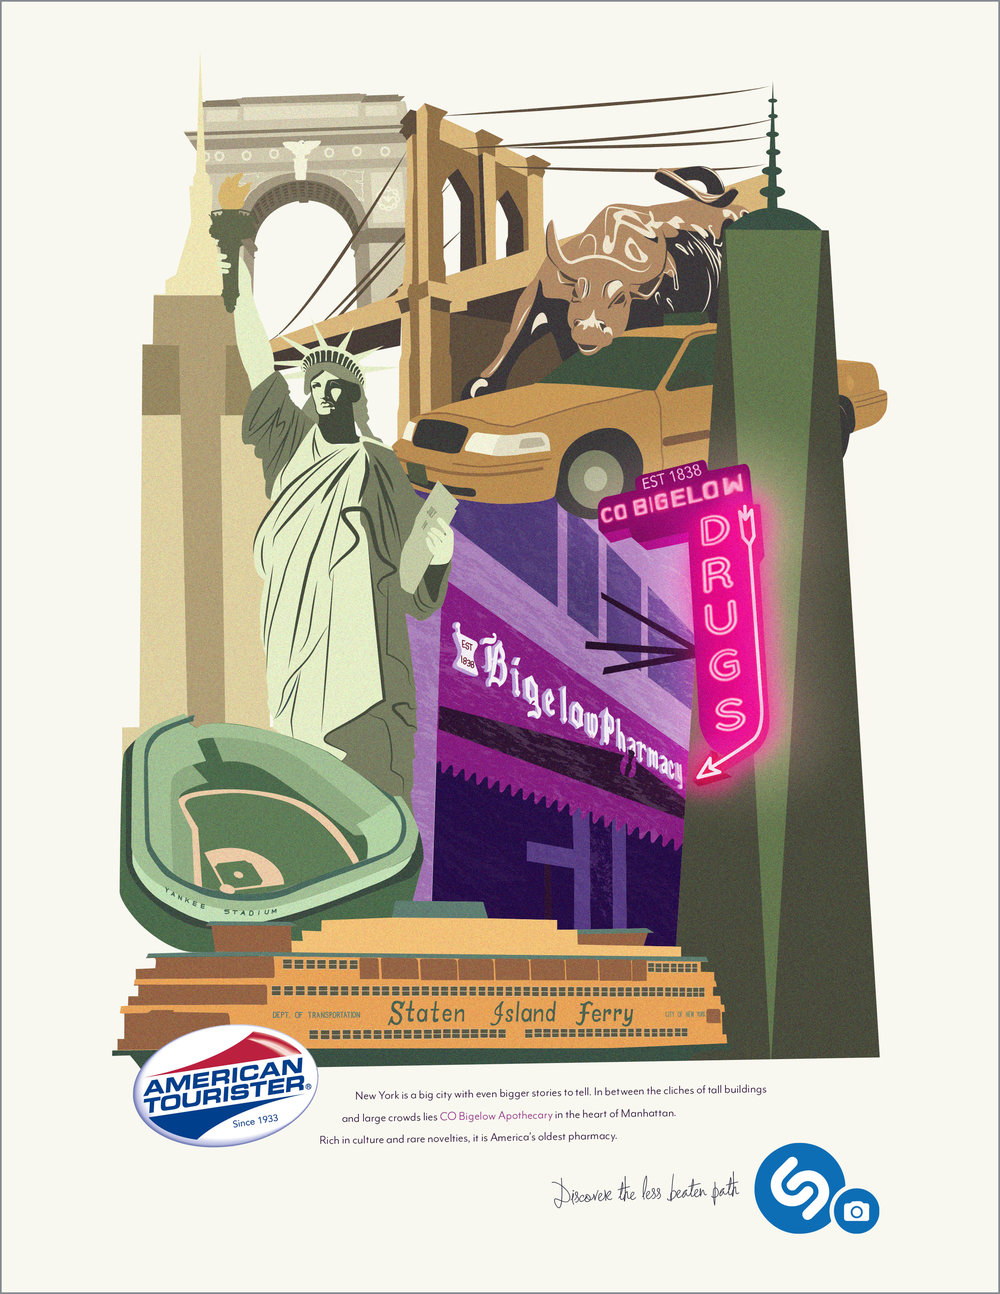 New York is a big city with even bigger stories to tell. In between the cliches of tall buildings and large crowds, lies CO Bigelow Aparthcathy in the heart of Manhattan. Rich in culture and rare novelties, it is America's oldest pharmacy.